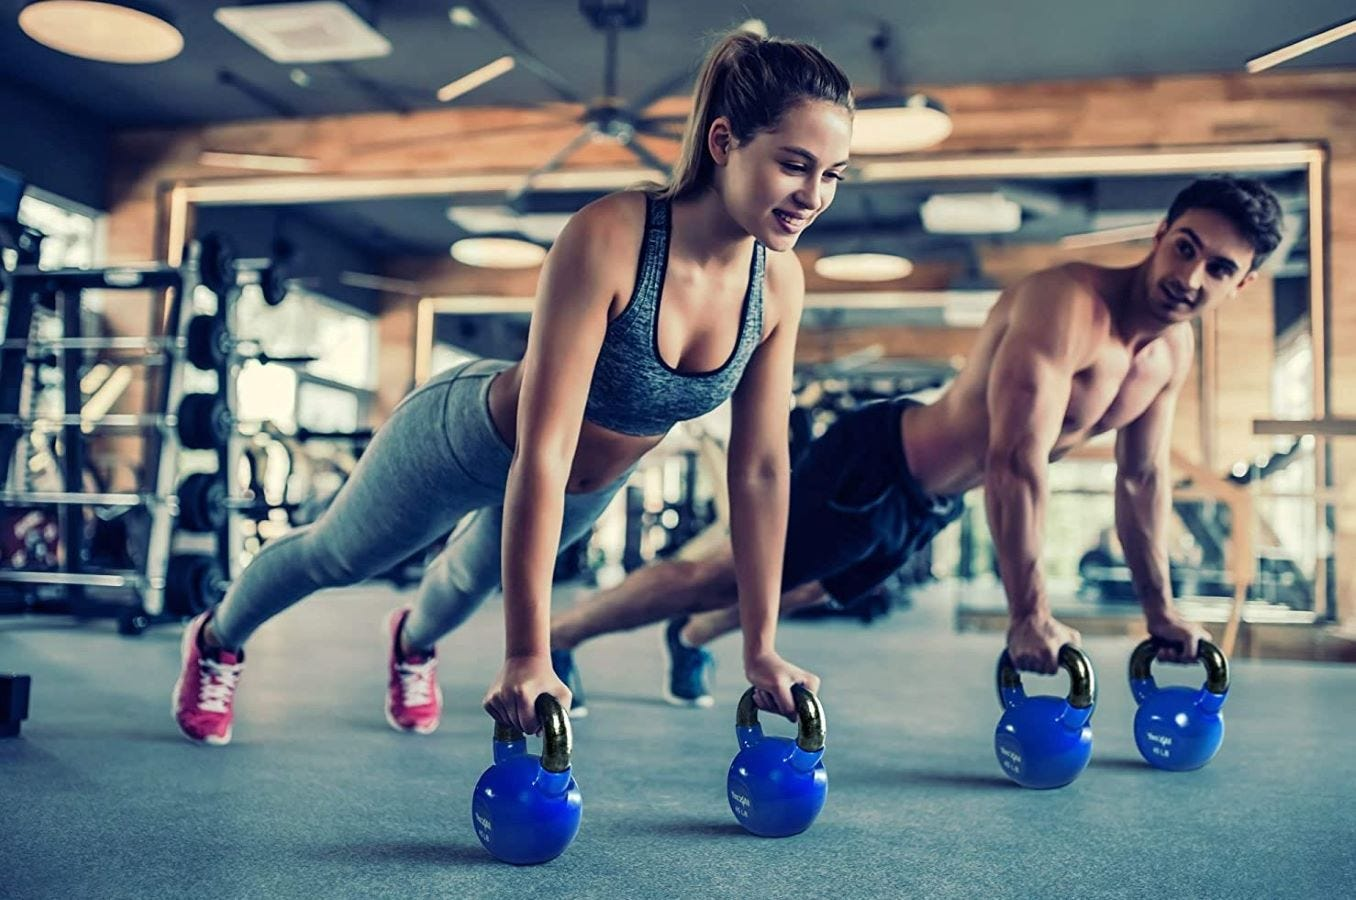 A man and woman using Yes4All kettlebells in a gym.